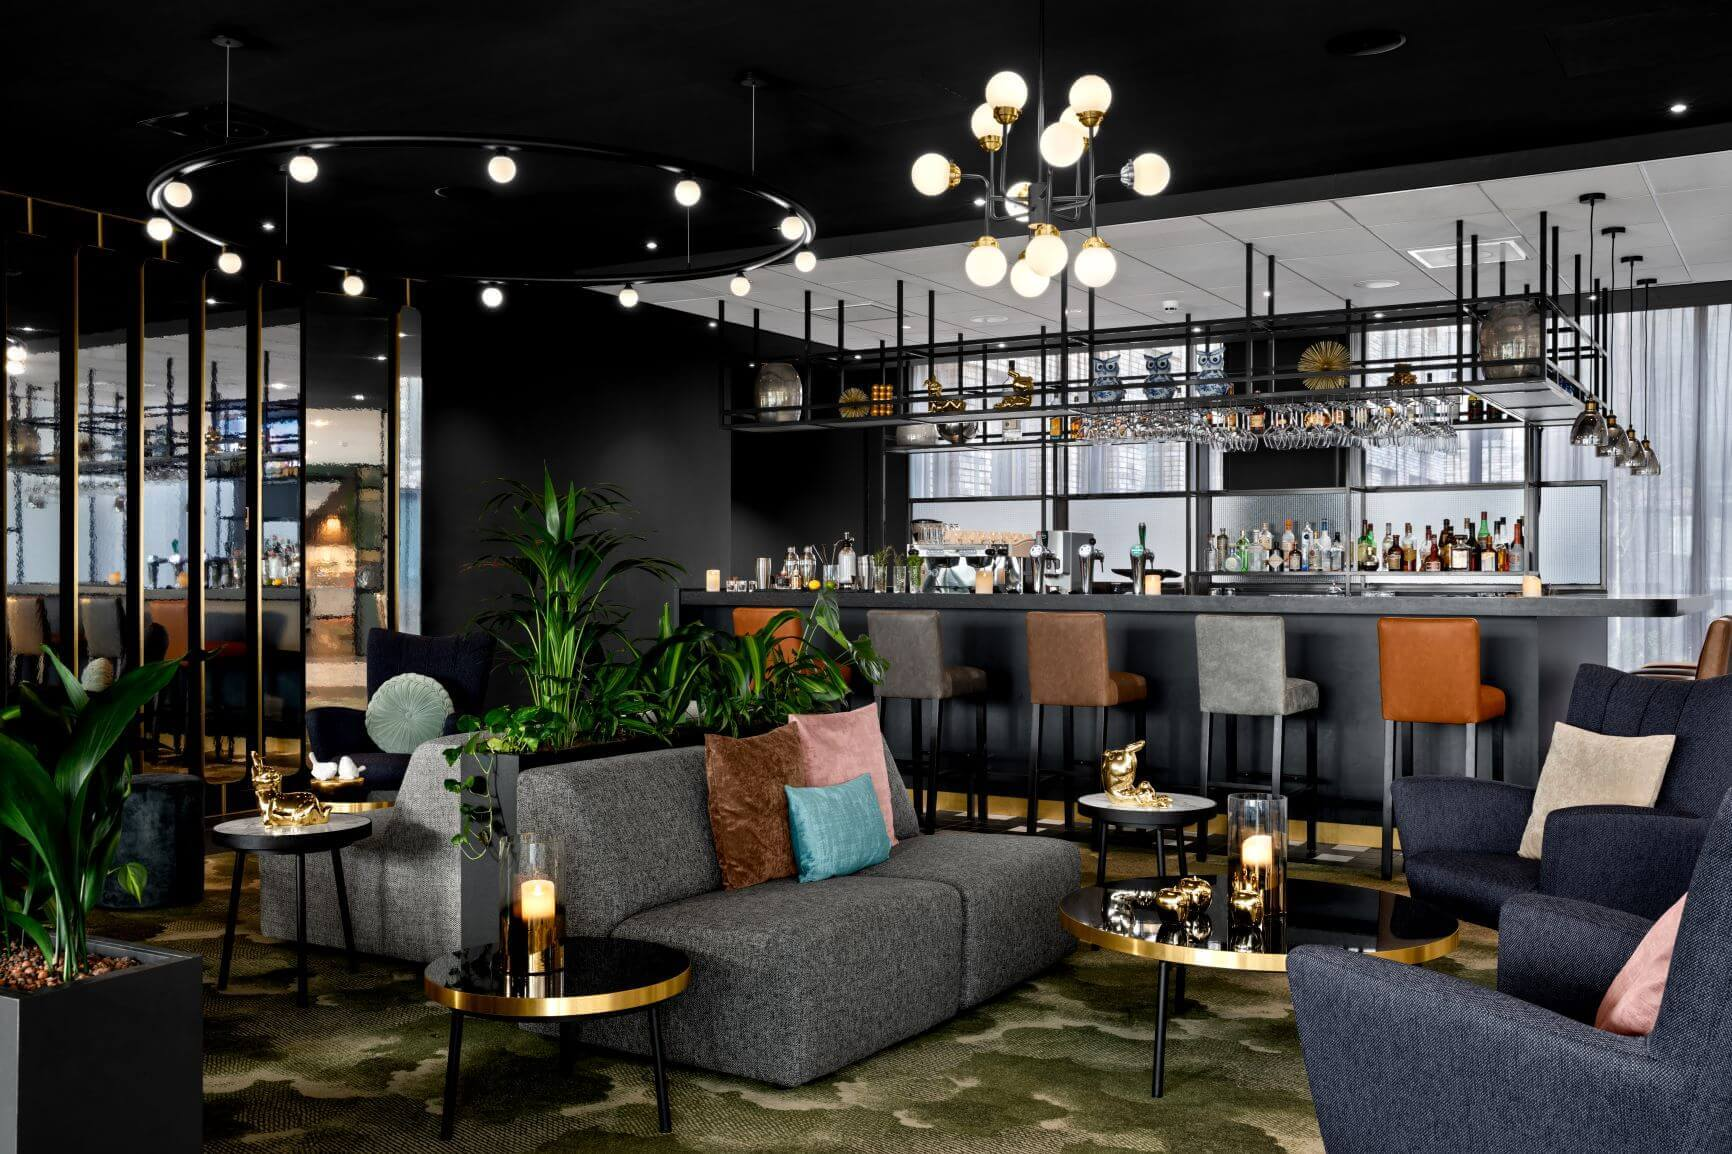 Signature Restaurant and Bloom Bar of Renaissance Hotel Aalsmeer